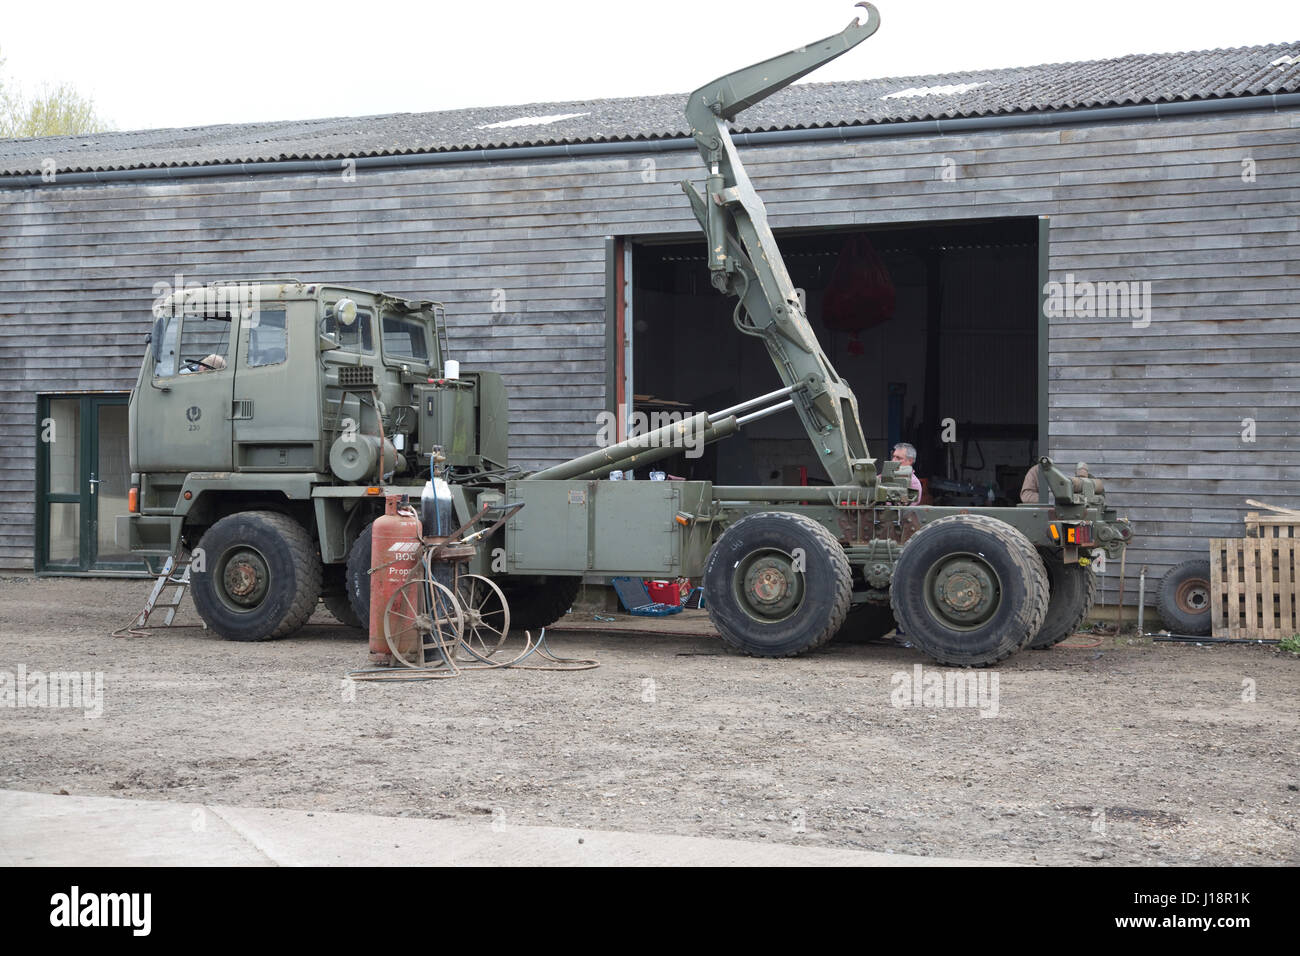 Ex army military 8WD all wheel drive khaki green truck with rear mounted crane lift being restored Cheltenham UK - Stock Image